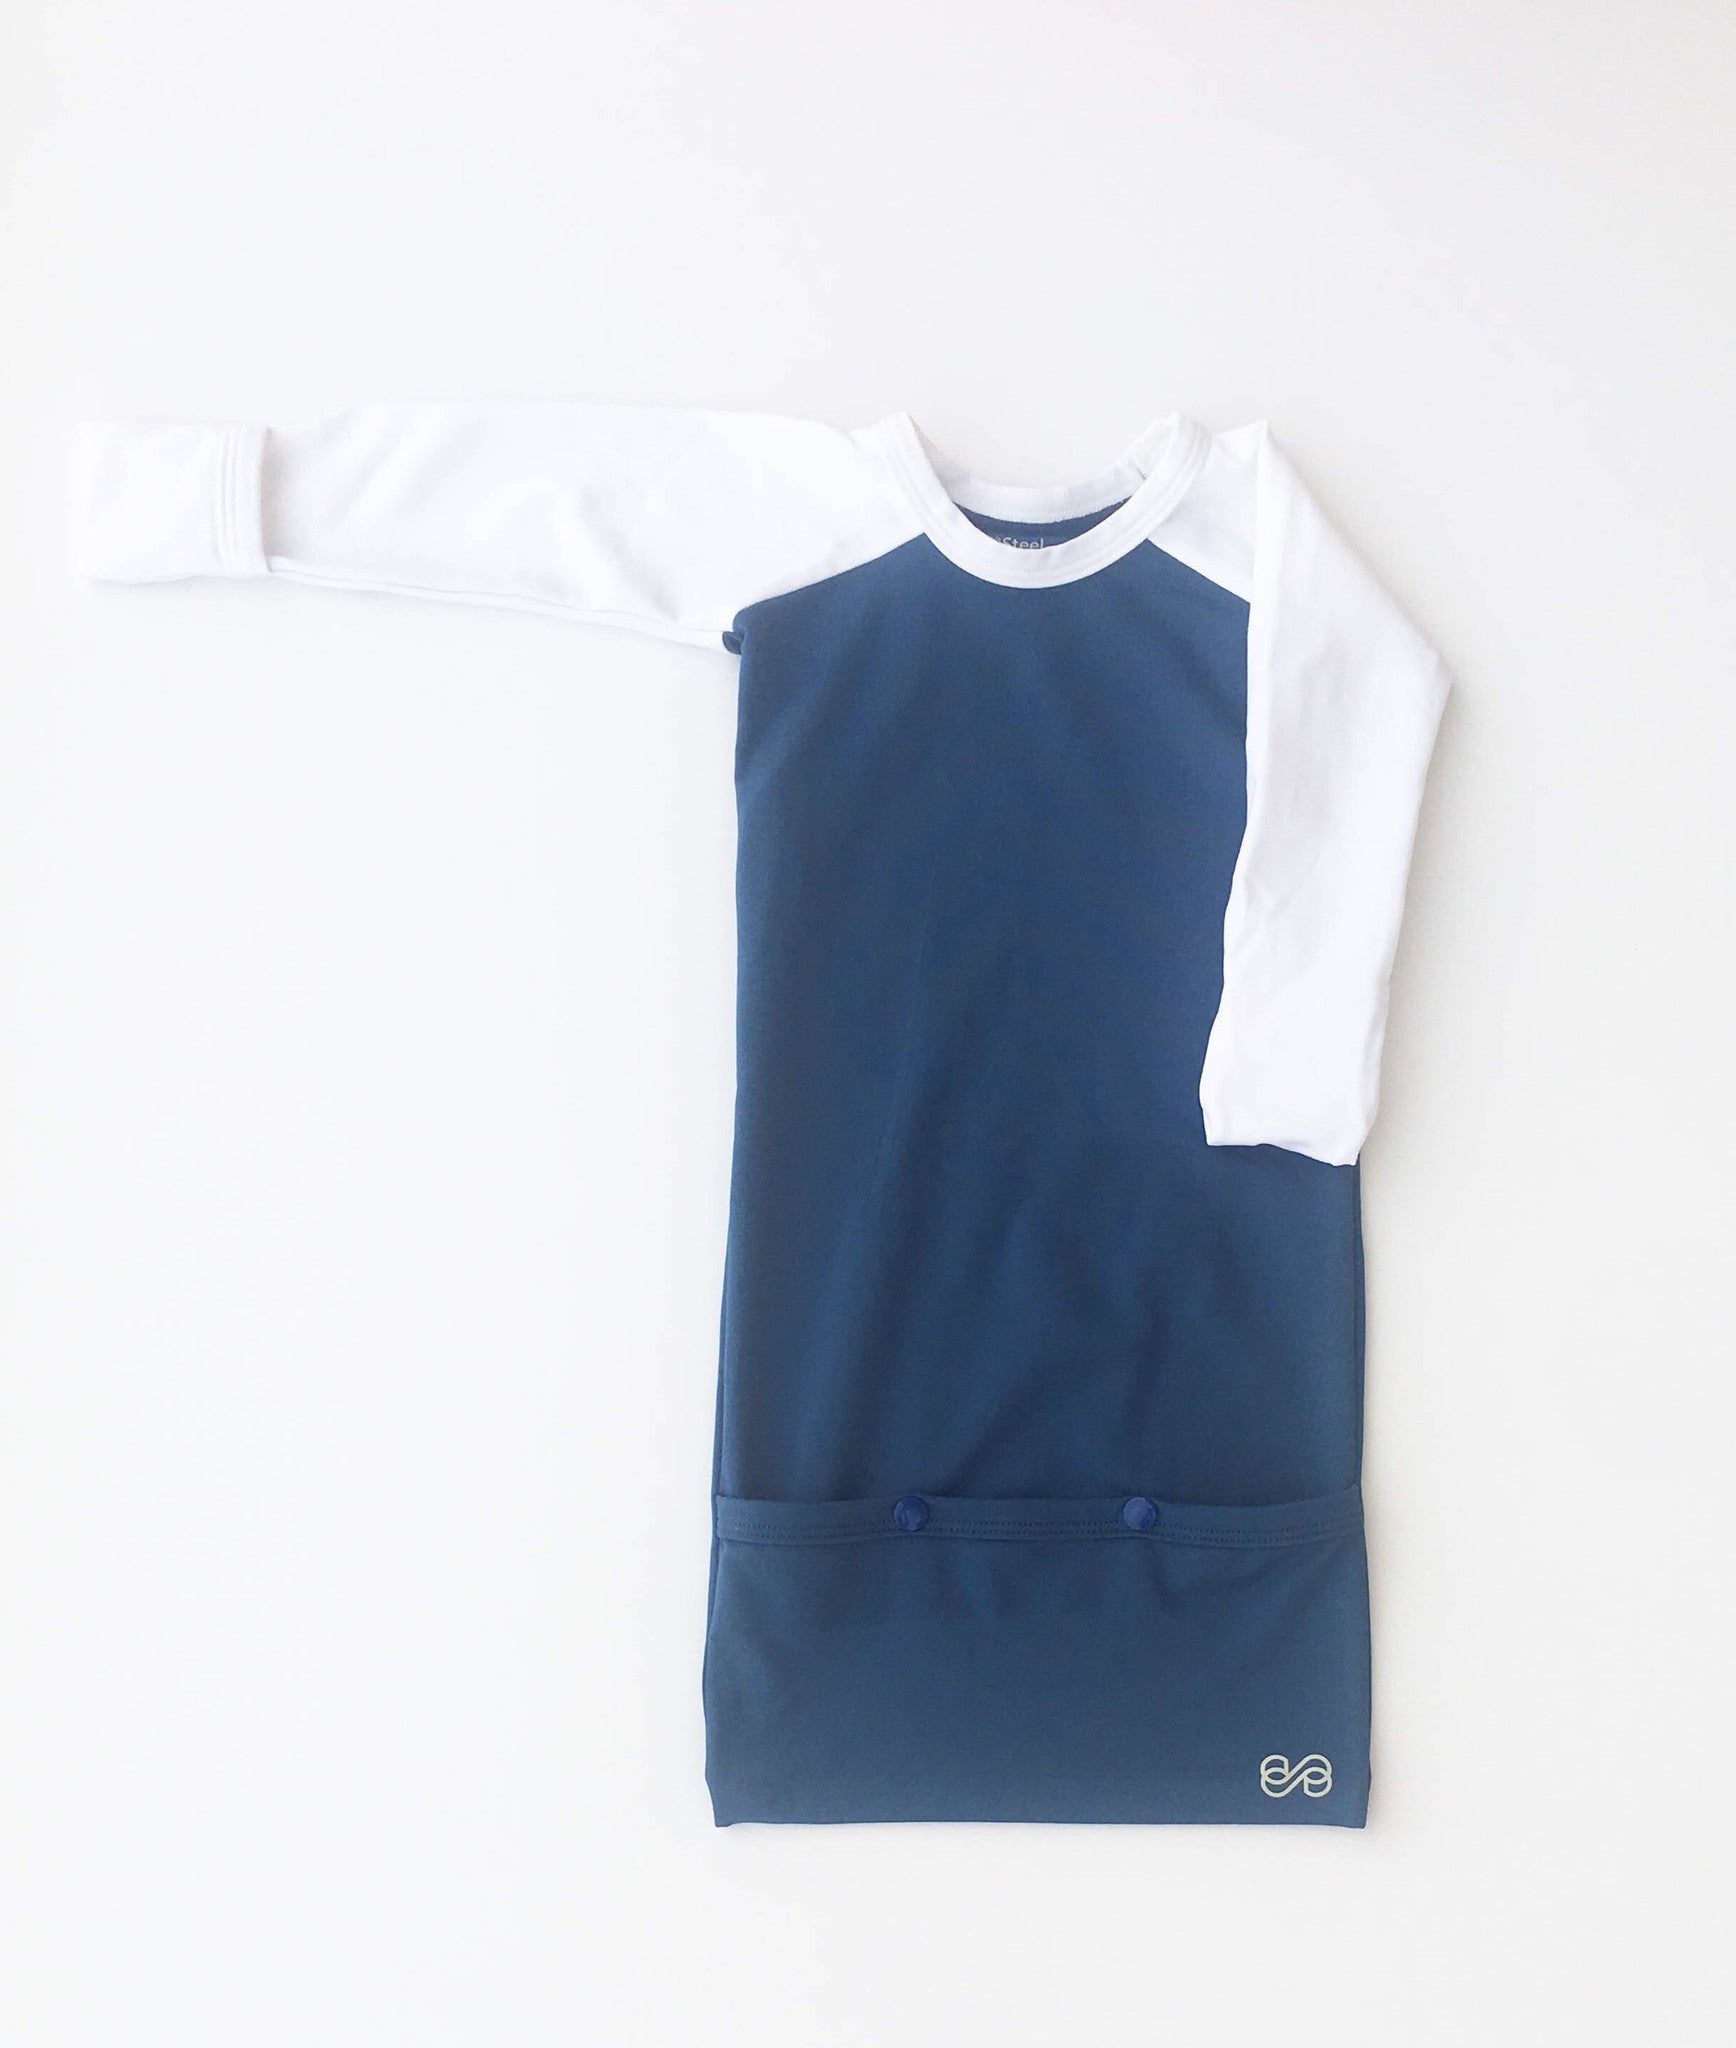 Pocket Sleeper in Bright Blue & White